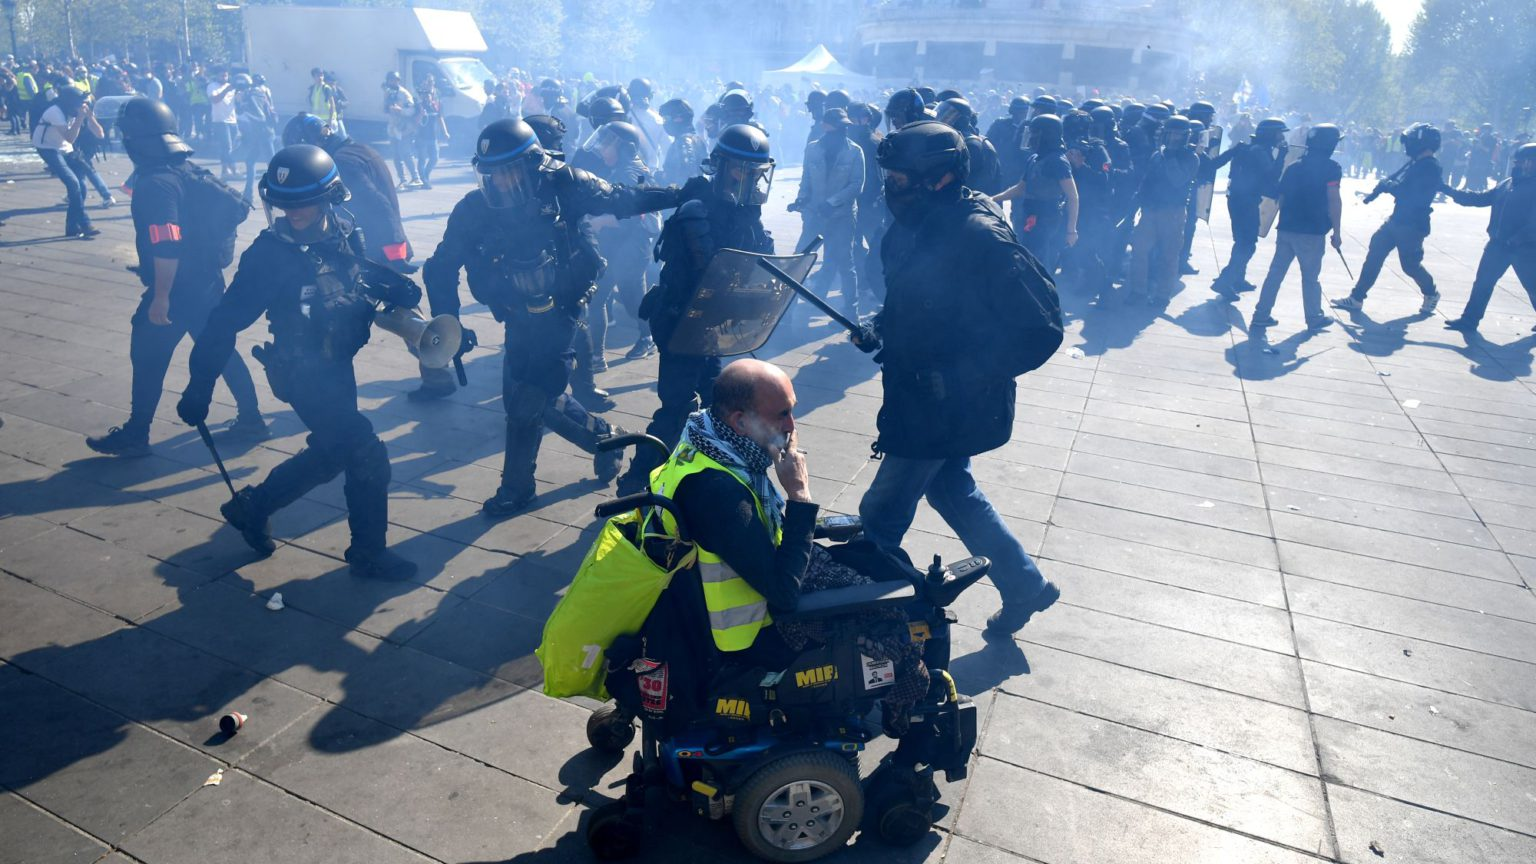 Now the French police are attacking disabled people